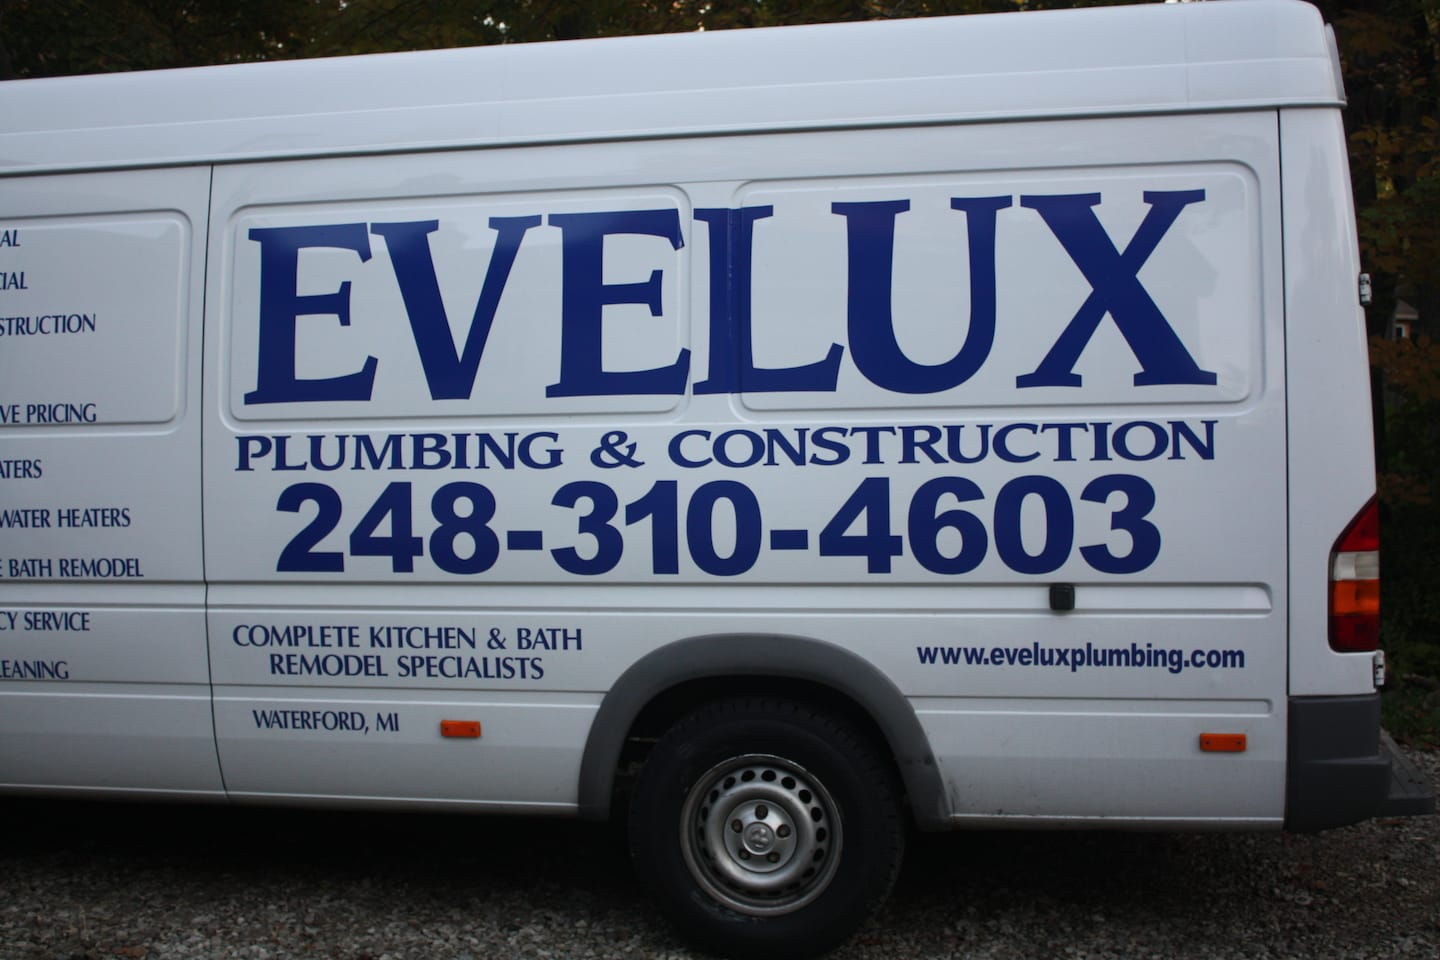 Evelux Plumbing & Construction